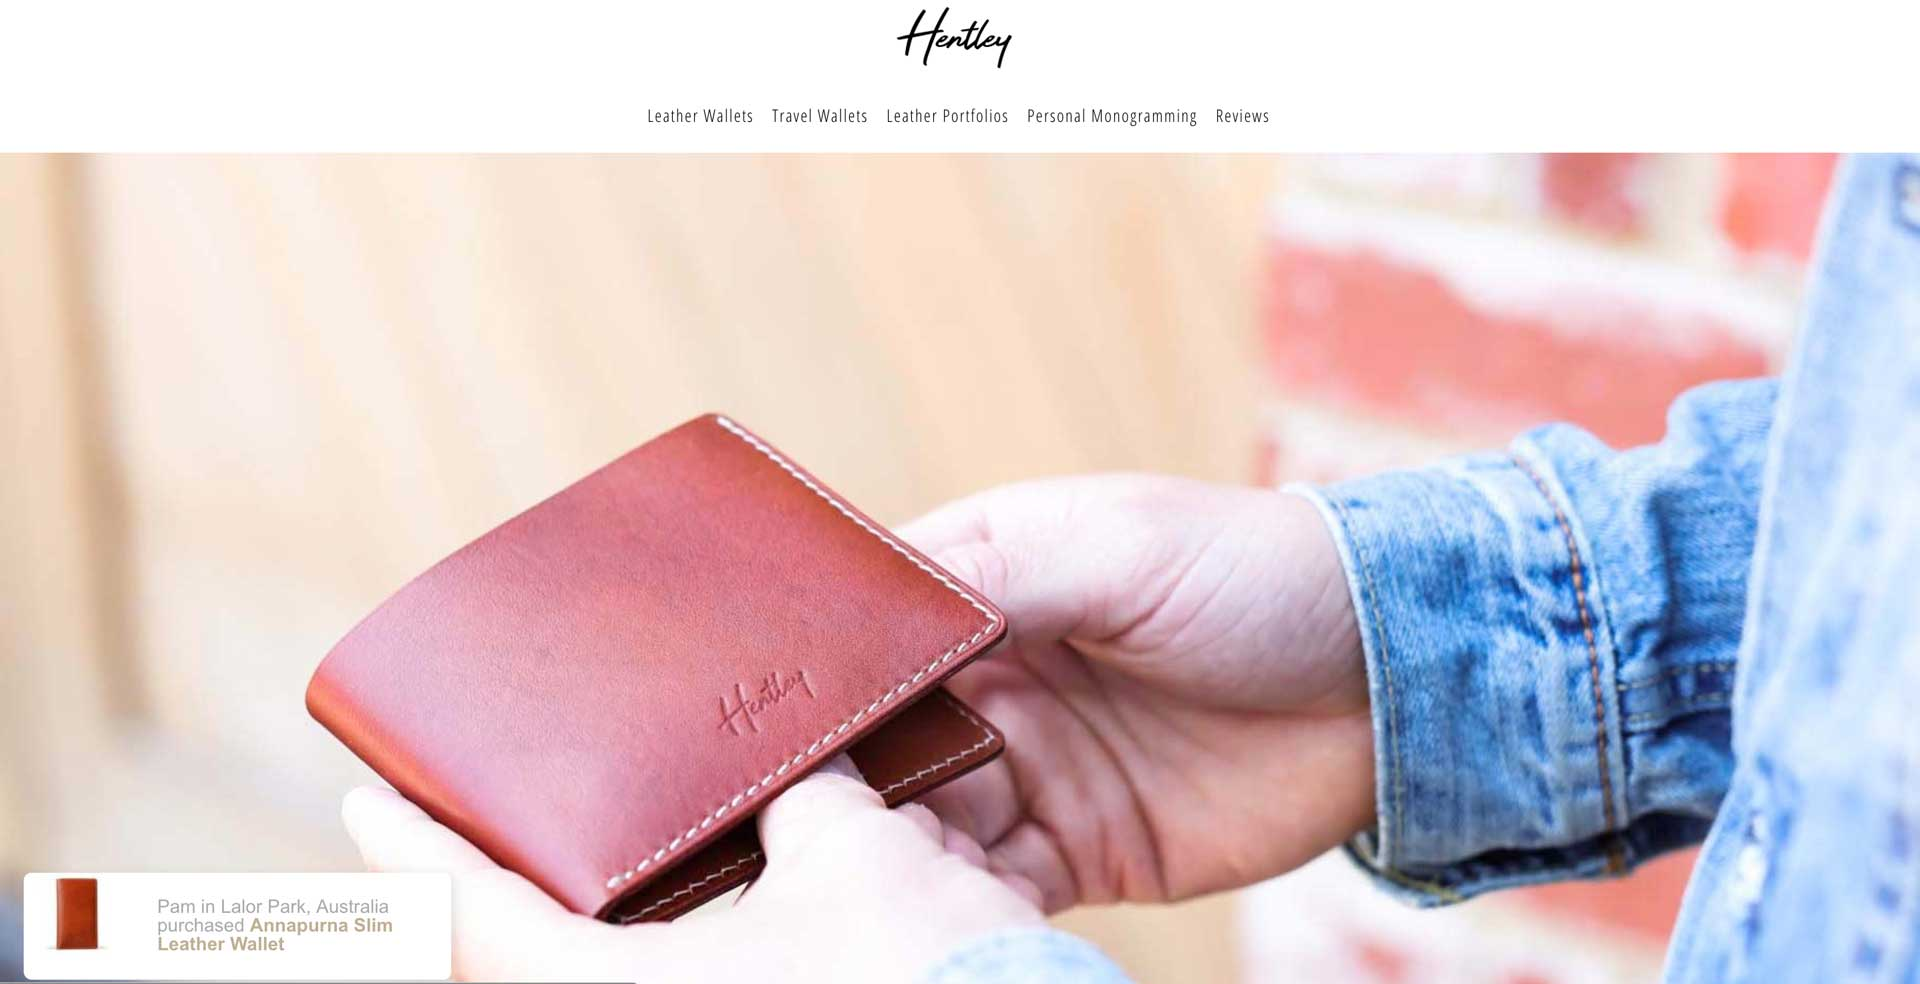 How A Leather Wallet Company Is Increasing Click Through Rates With Fomo